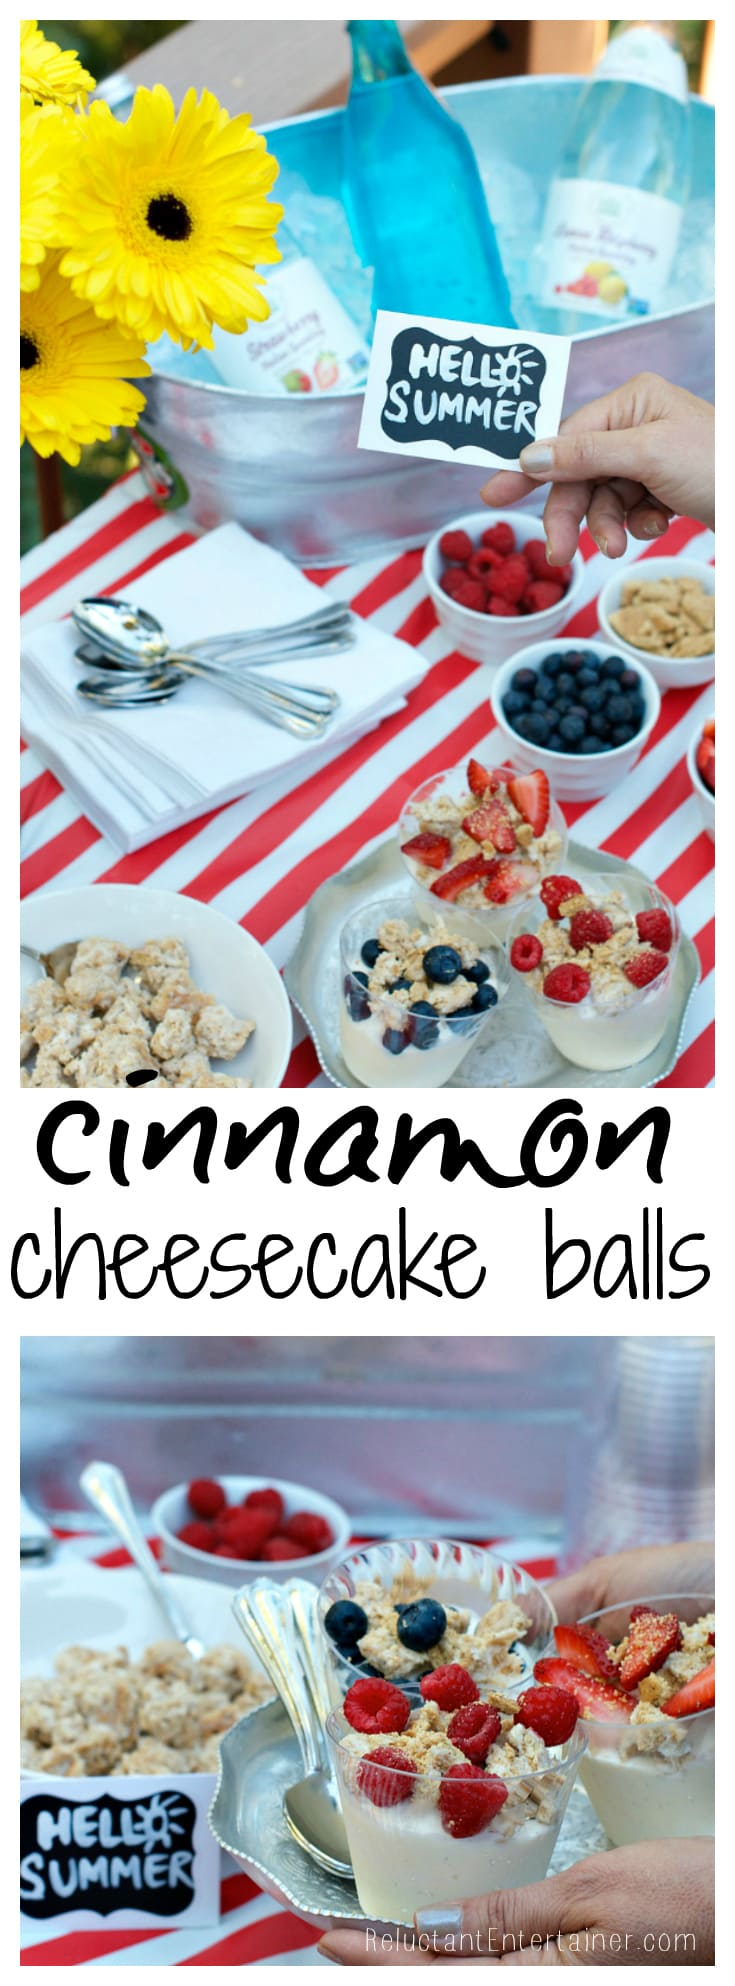 Cinnamon Cheesecake Balls for Fourth of July entertaining | ReluctantEntertainer.com